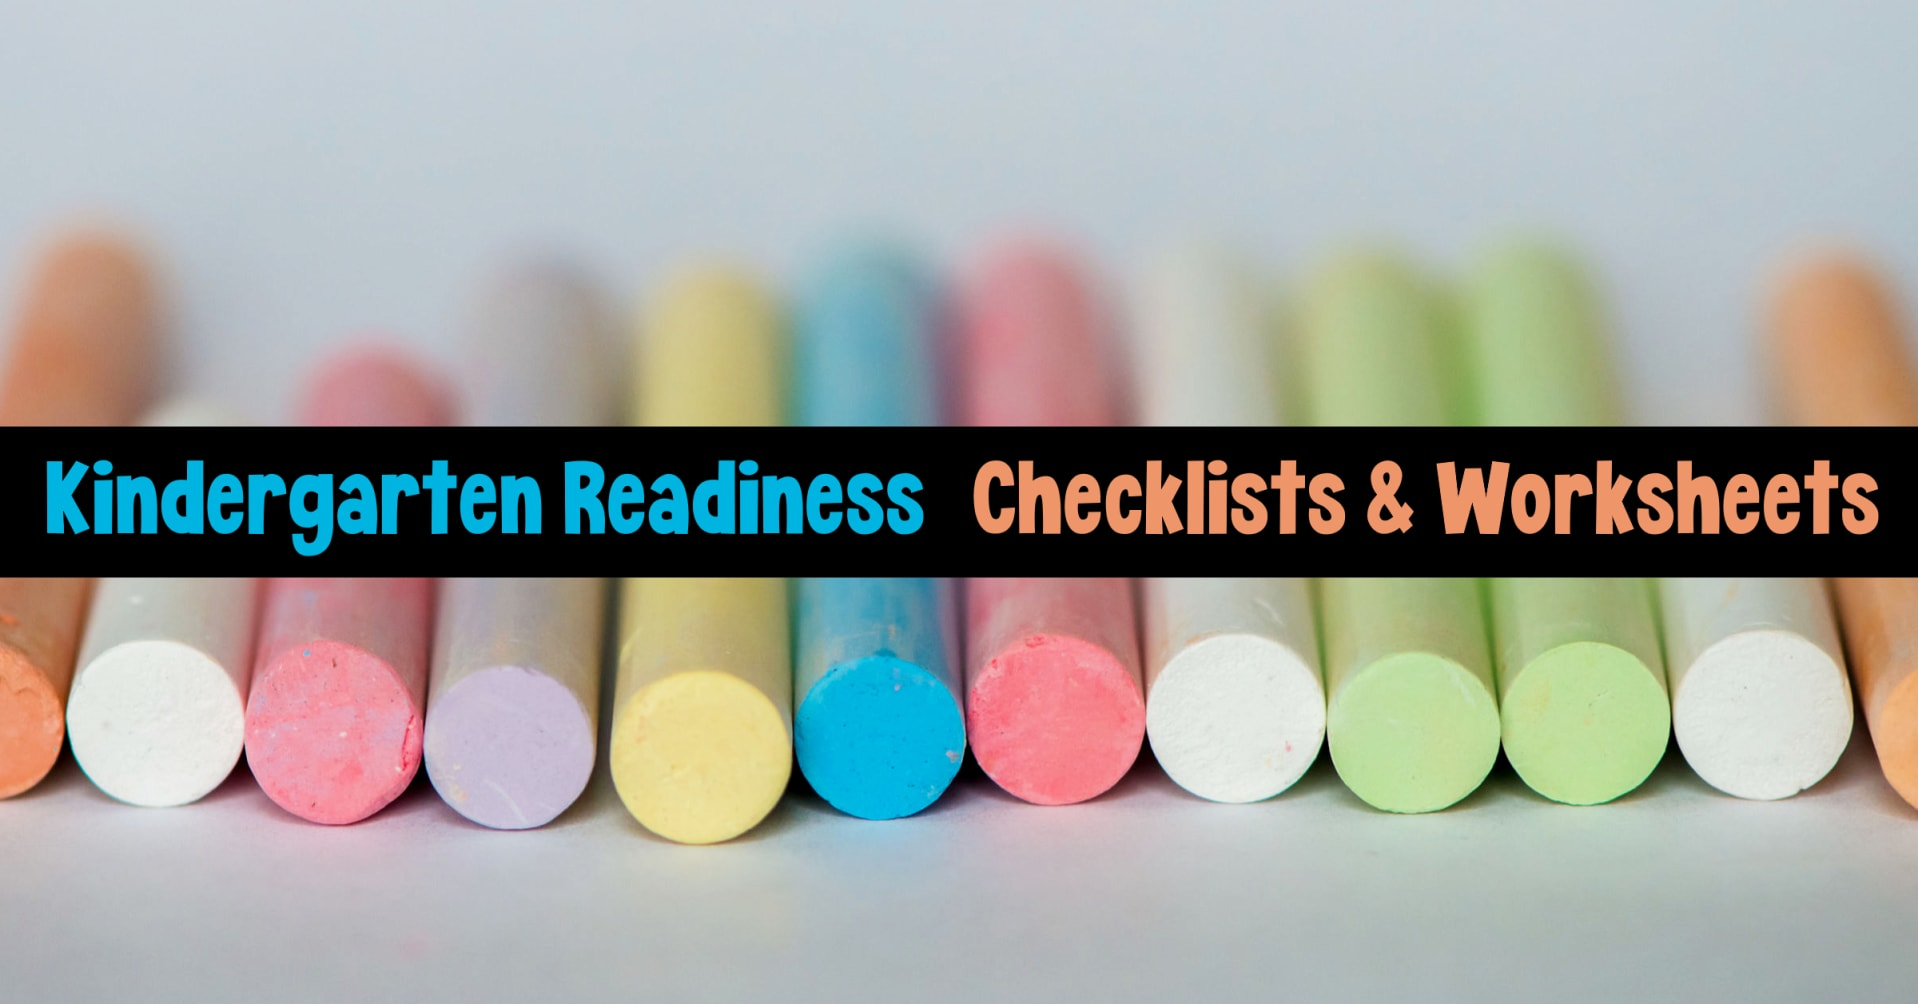 Is MY child ready for kindergarten? These kindergarten readiness skills checklists for parents are almost better than a kindergarten readiness class - take the Is My Child Ready for Kindergarten quiz before you enroll your chicle in a kindergarten readiness program. Some of these are skills learned IN kindergarten - you can evaluate with this printable kindergarten readiness checklist pdf